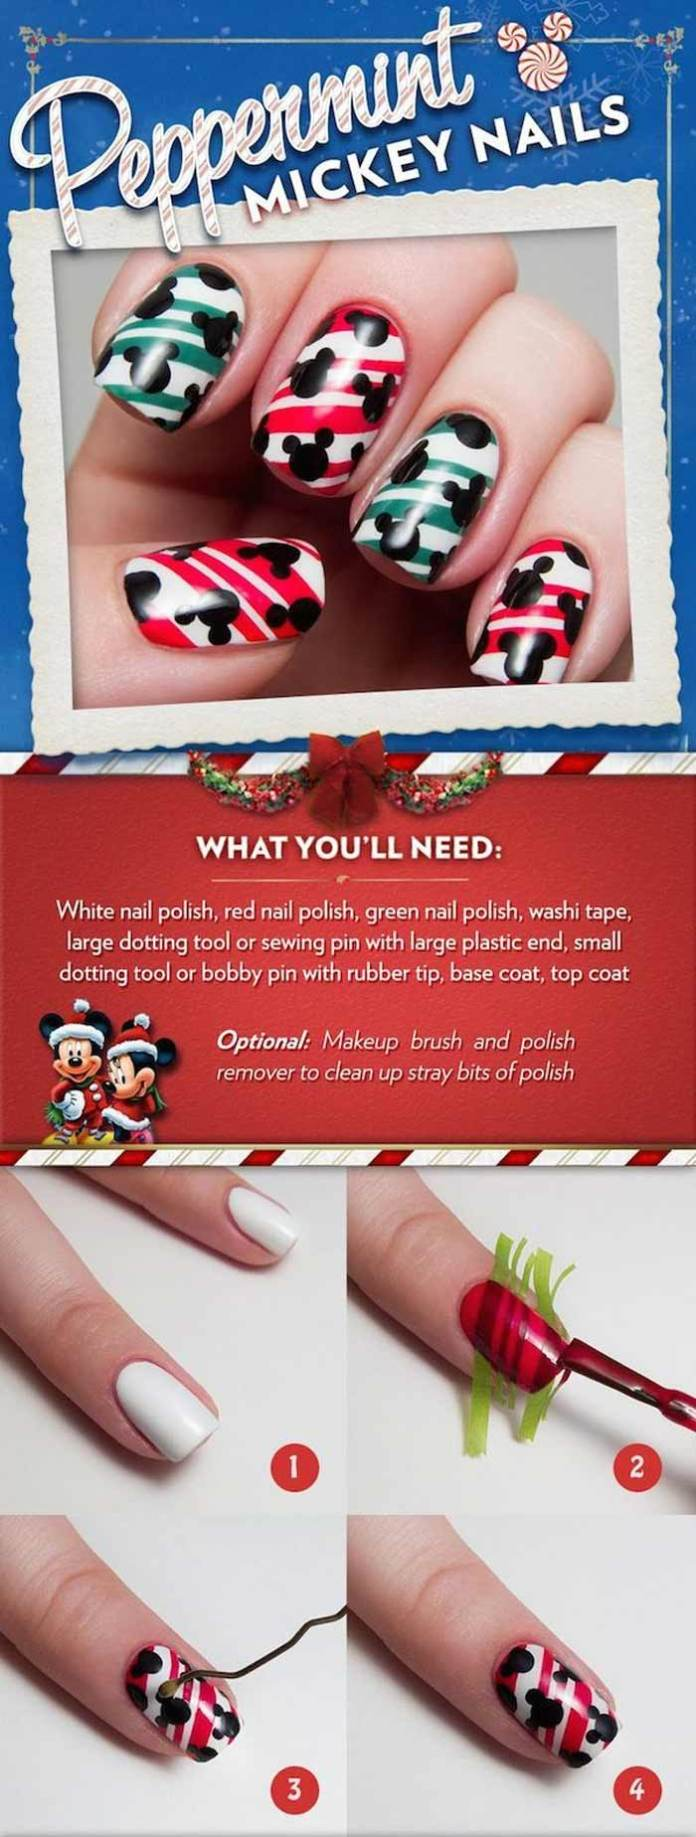 Holiday How To Paint Your Nails Peppermint Mickey This Holiday